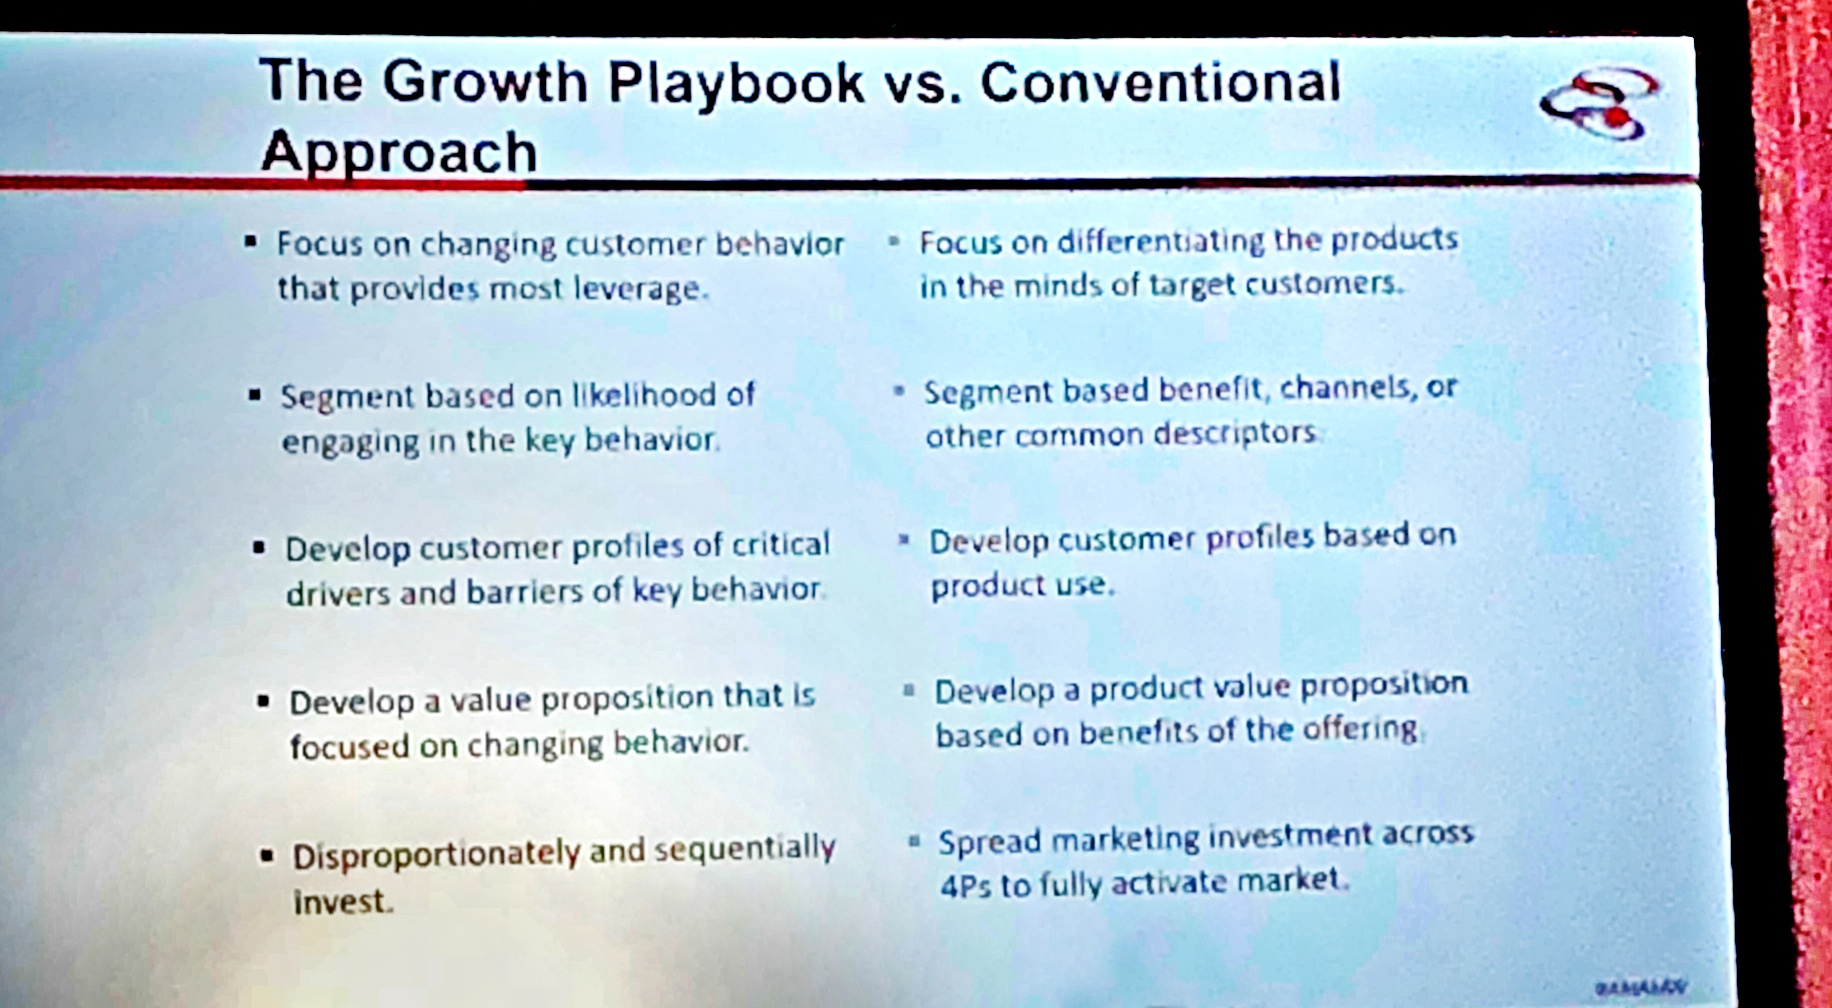 Growth-Playbook-vs-Conventional-Playbook